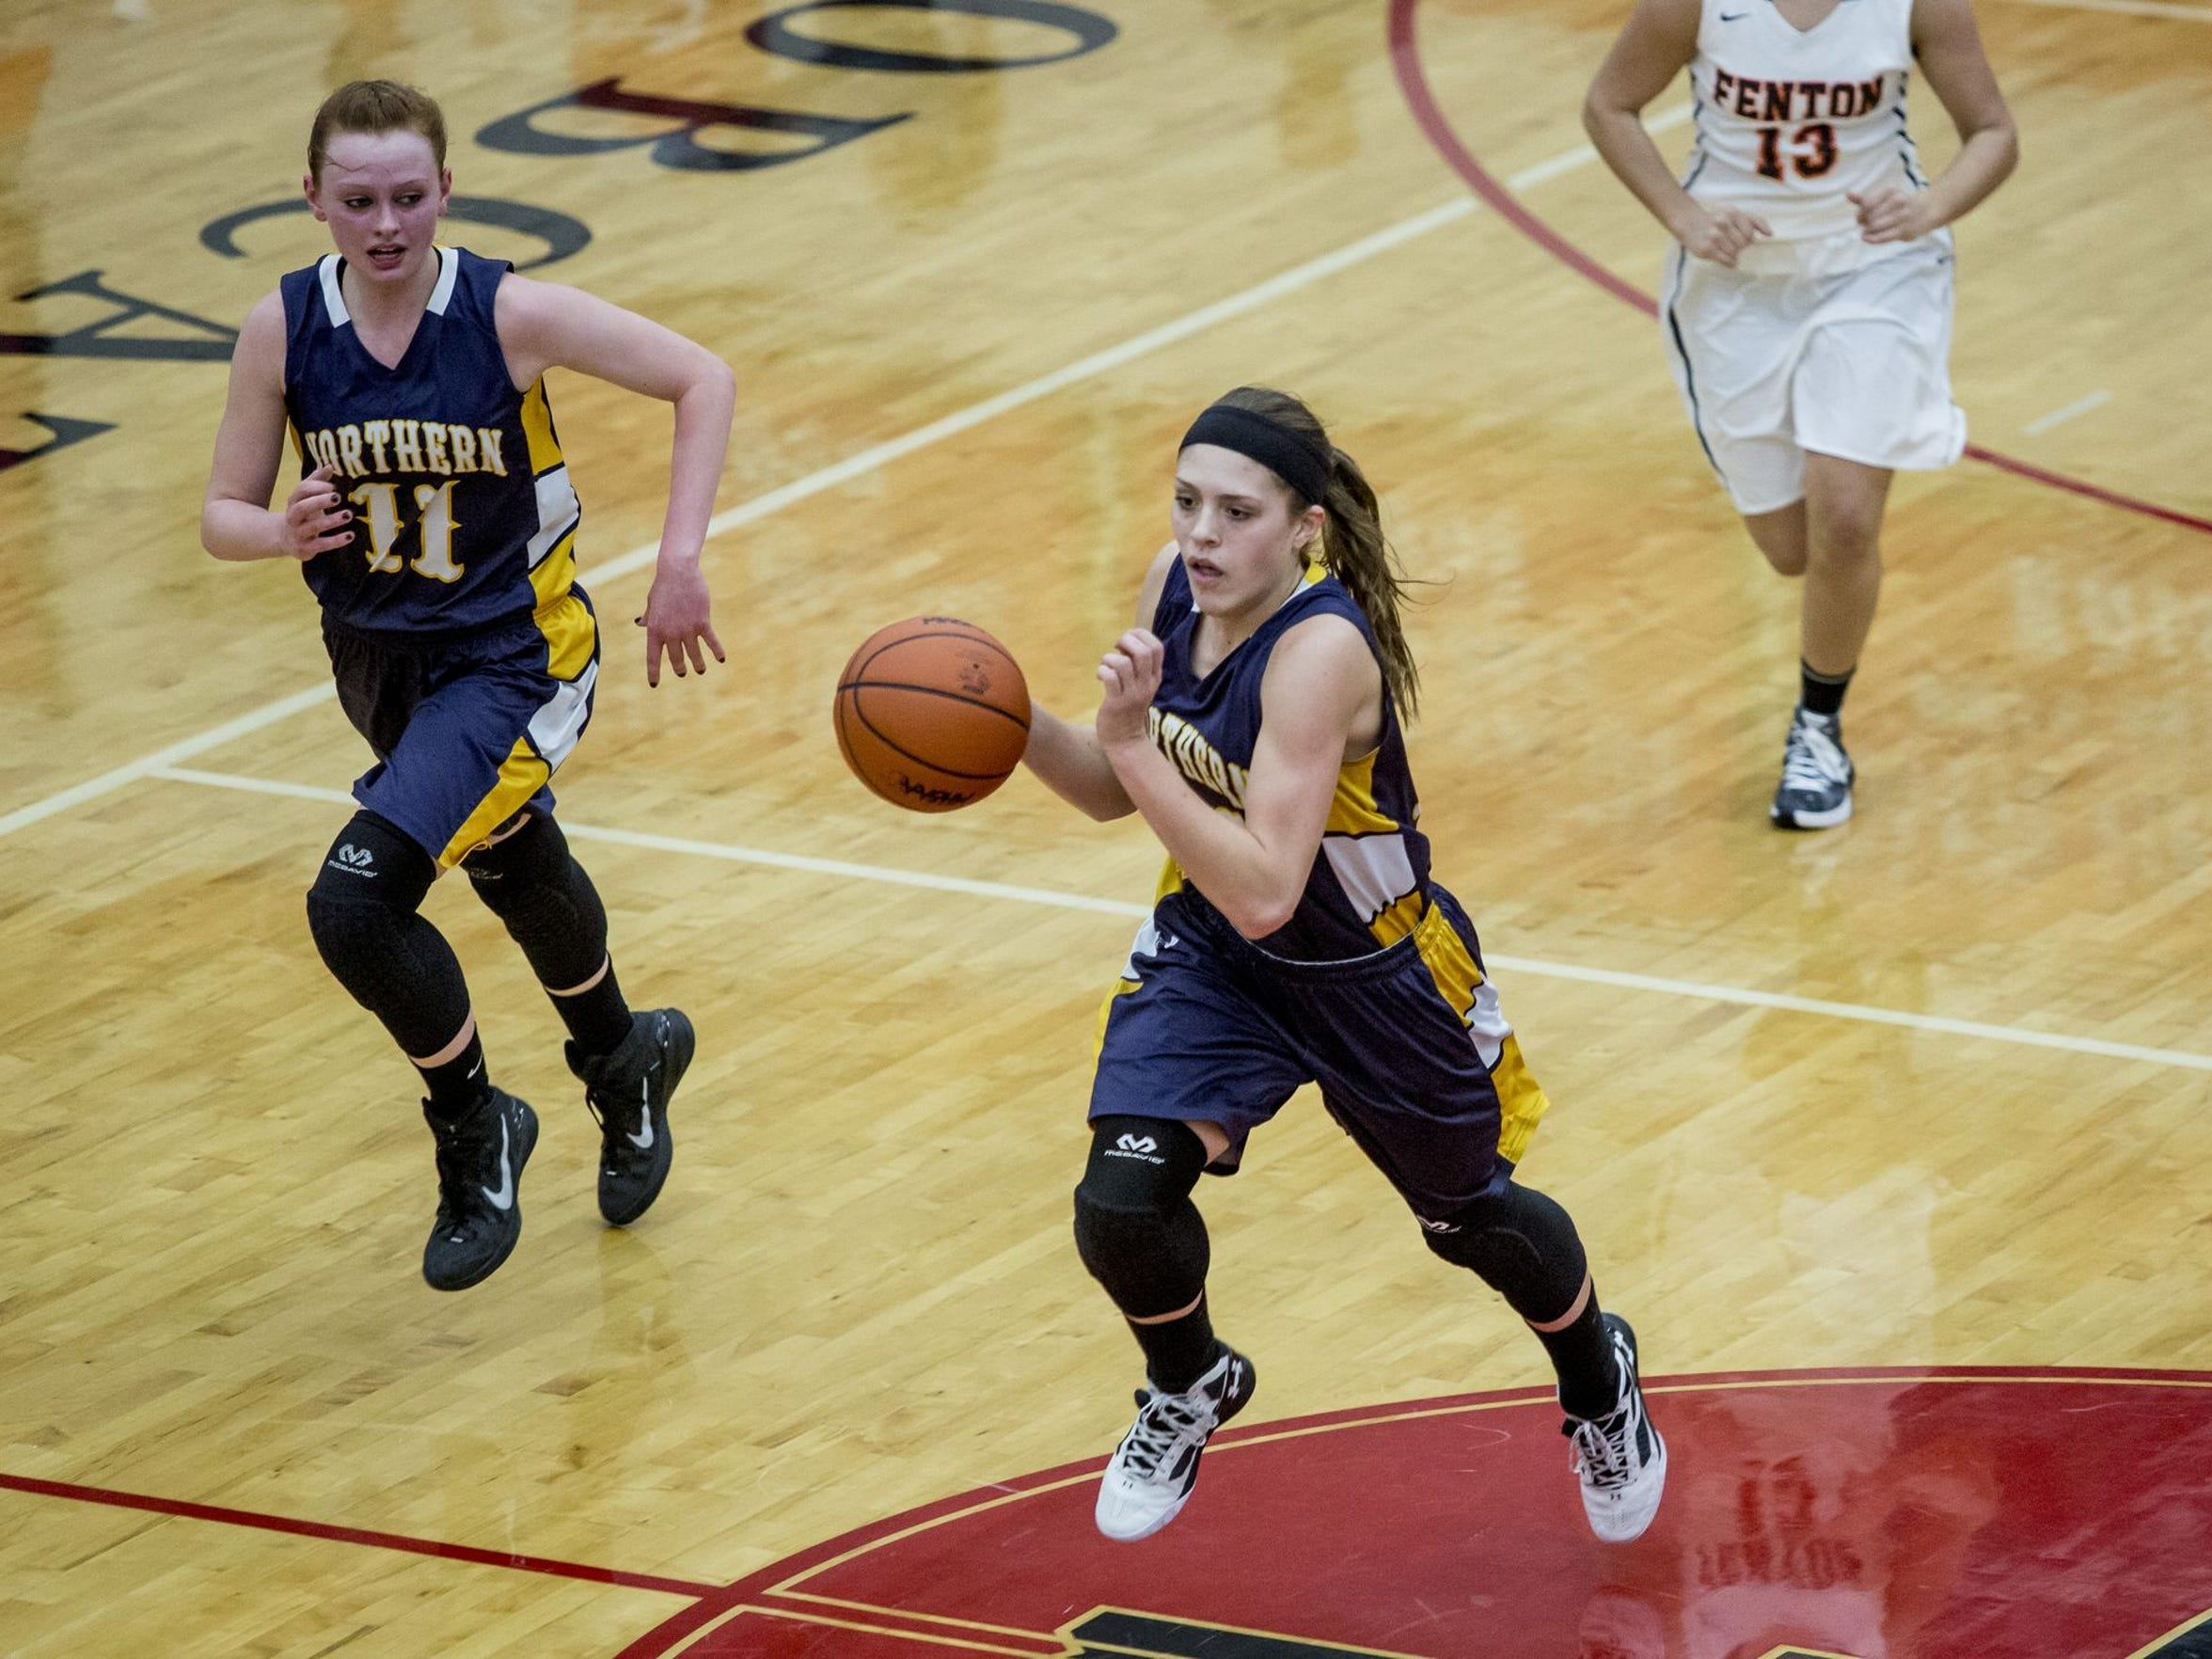 Port Huron Northern senior Kiana Votava breaks away with the ball during a regional final basketball game Thursday, March 10, 2016 at Grand Blanc High School.